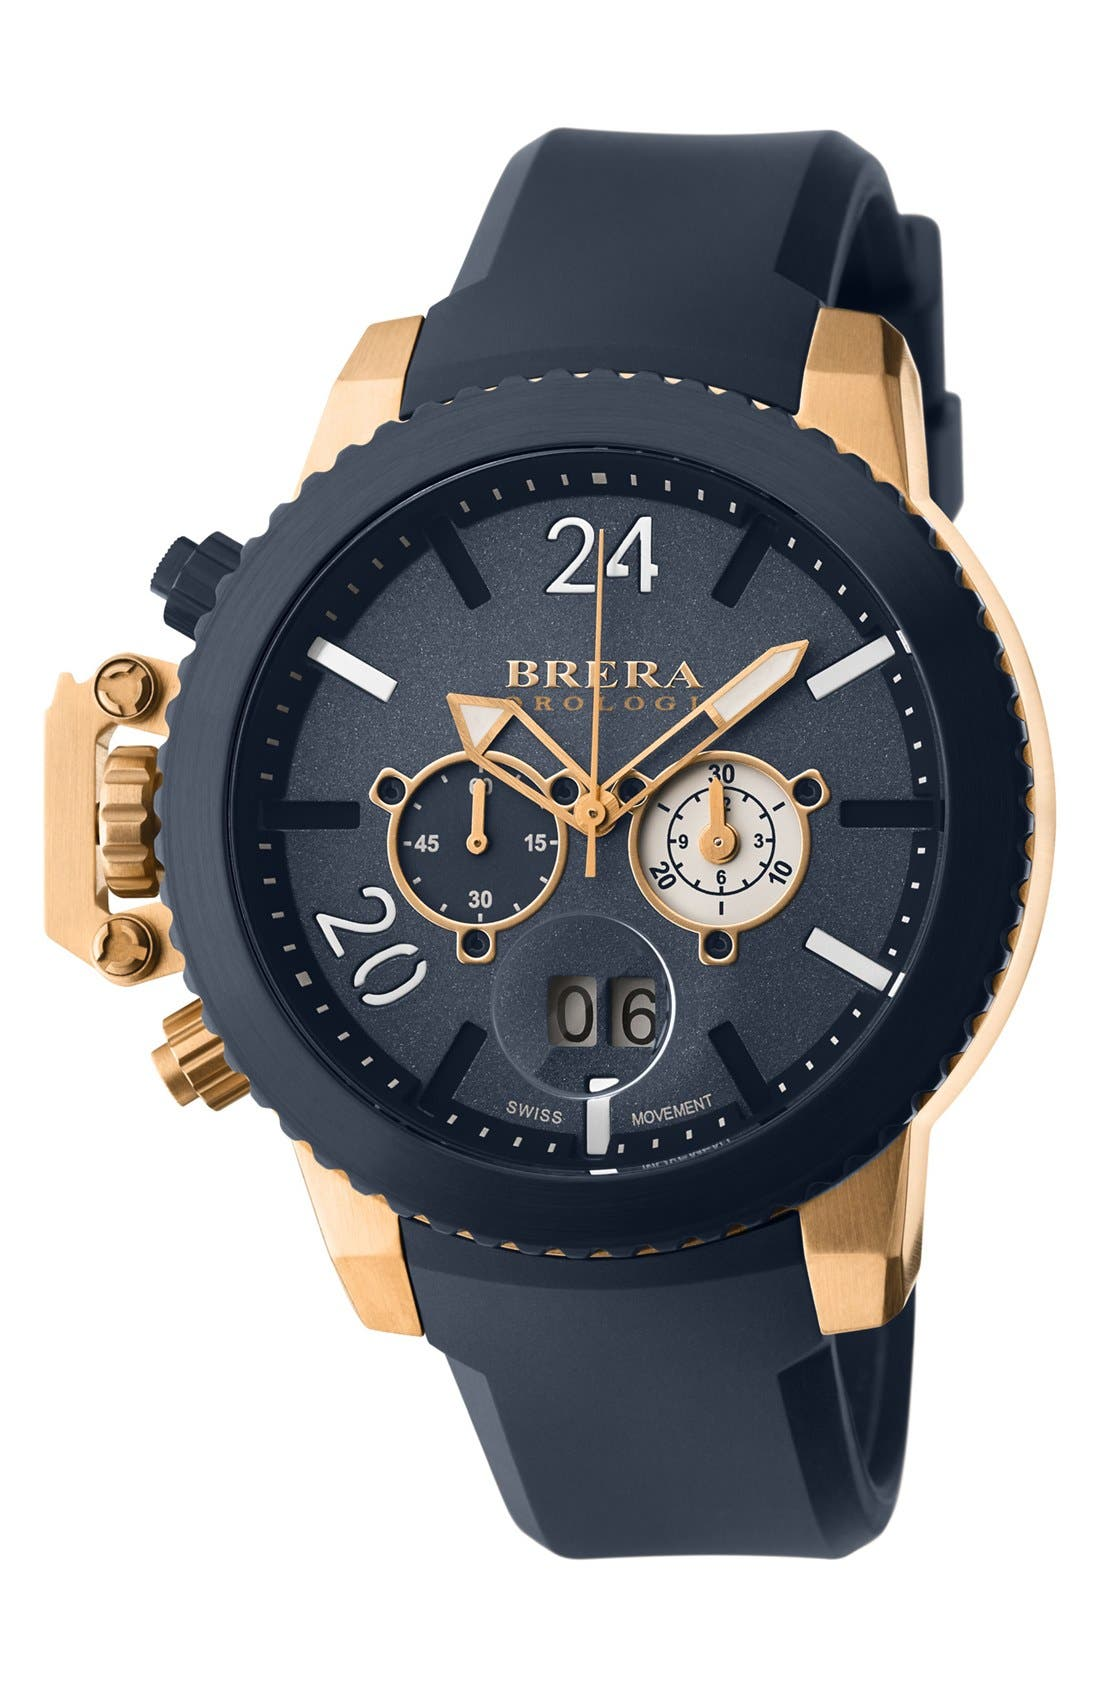 Main Image - Brera 'Militare II' Round Chronograph Watch, 48mm